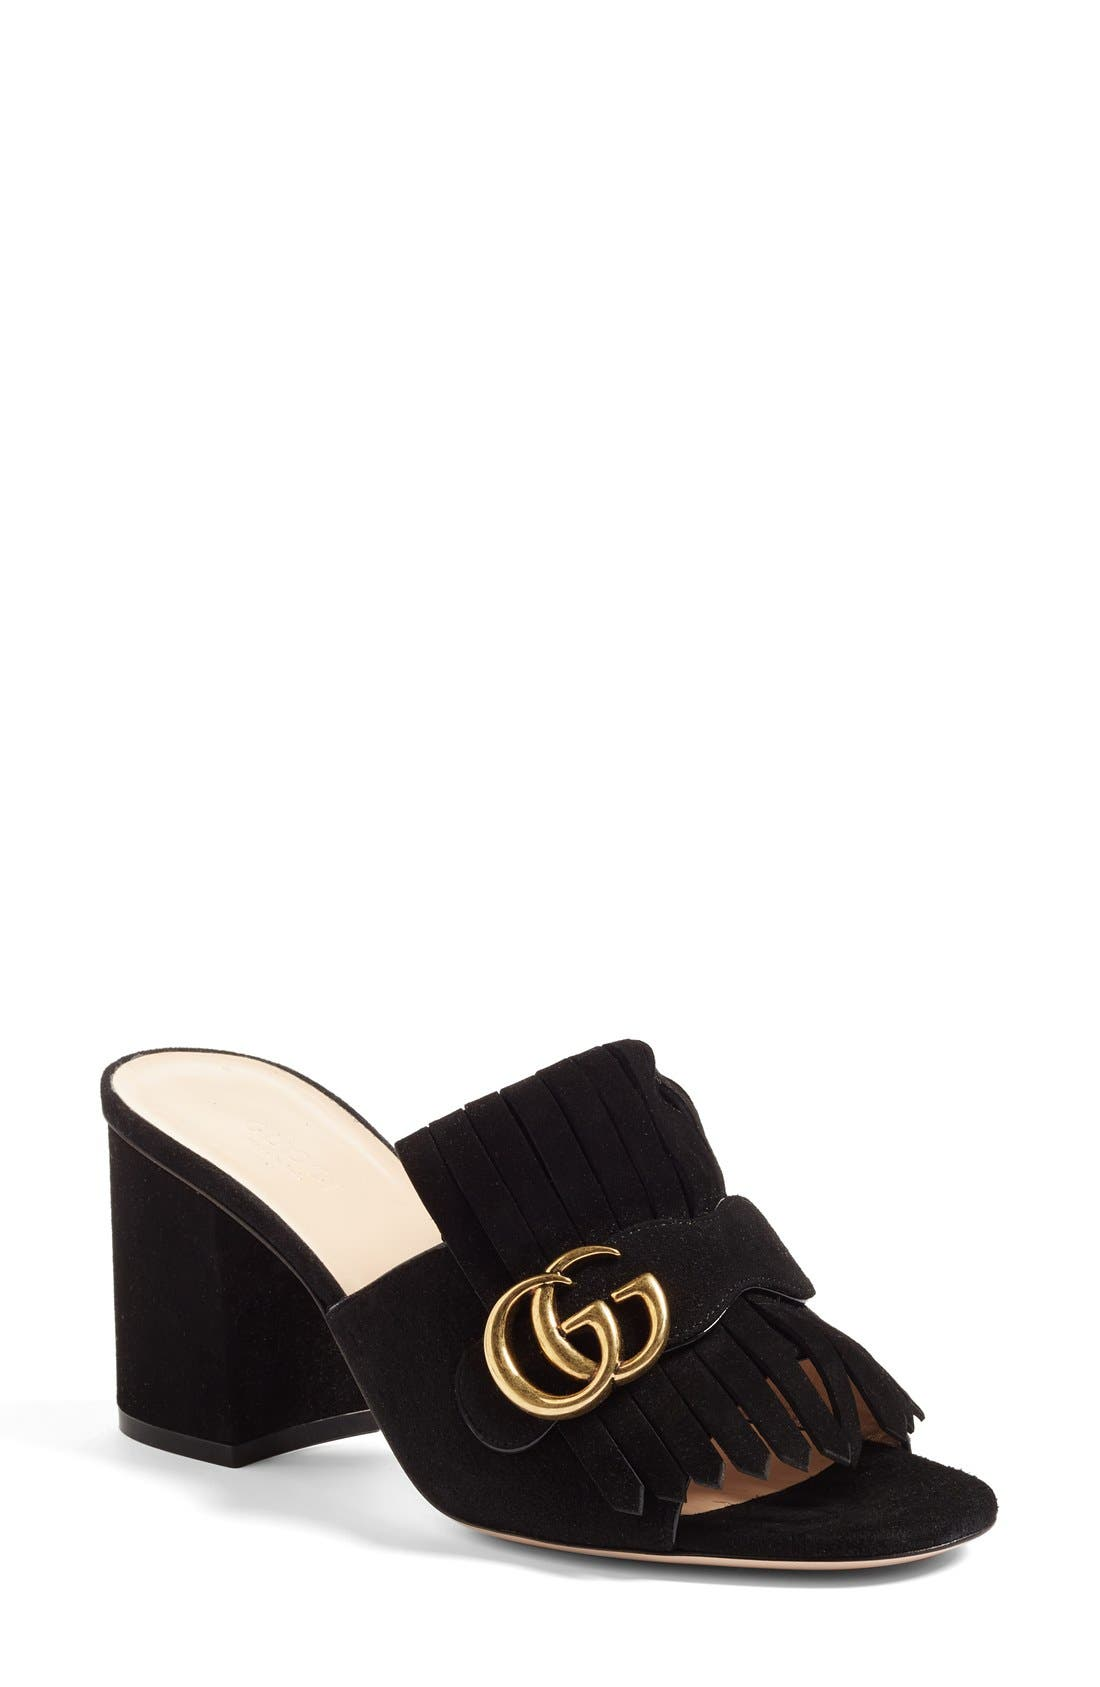 Alternate Image 1 Selected - Gucci GG Marmont Peep Toe Mule (Women)